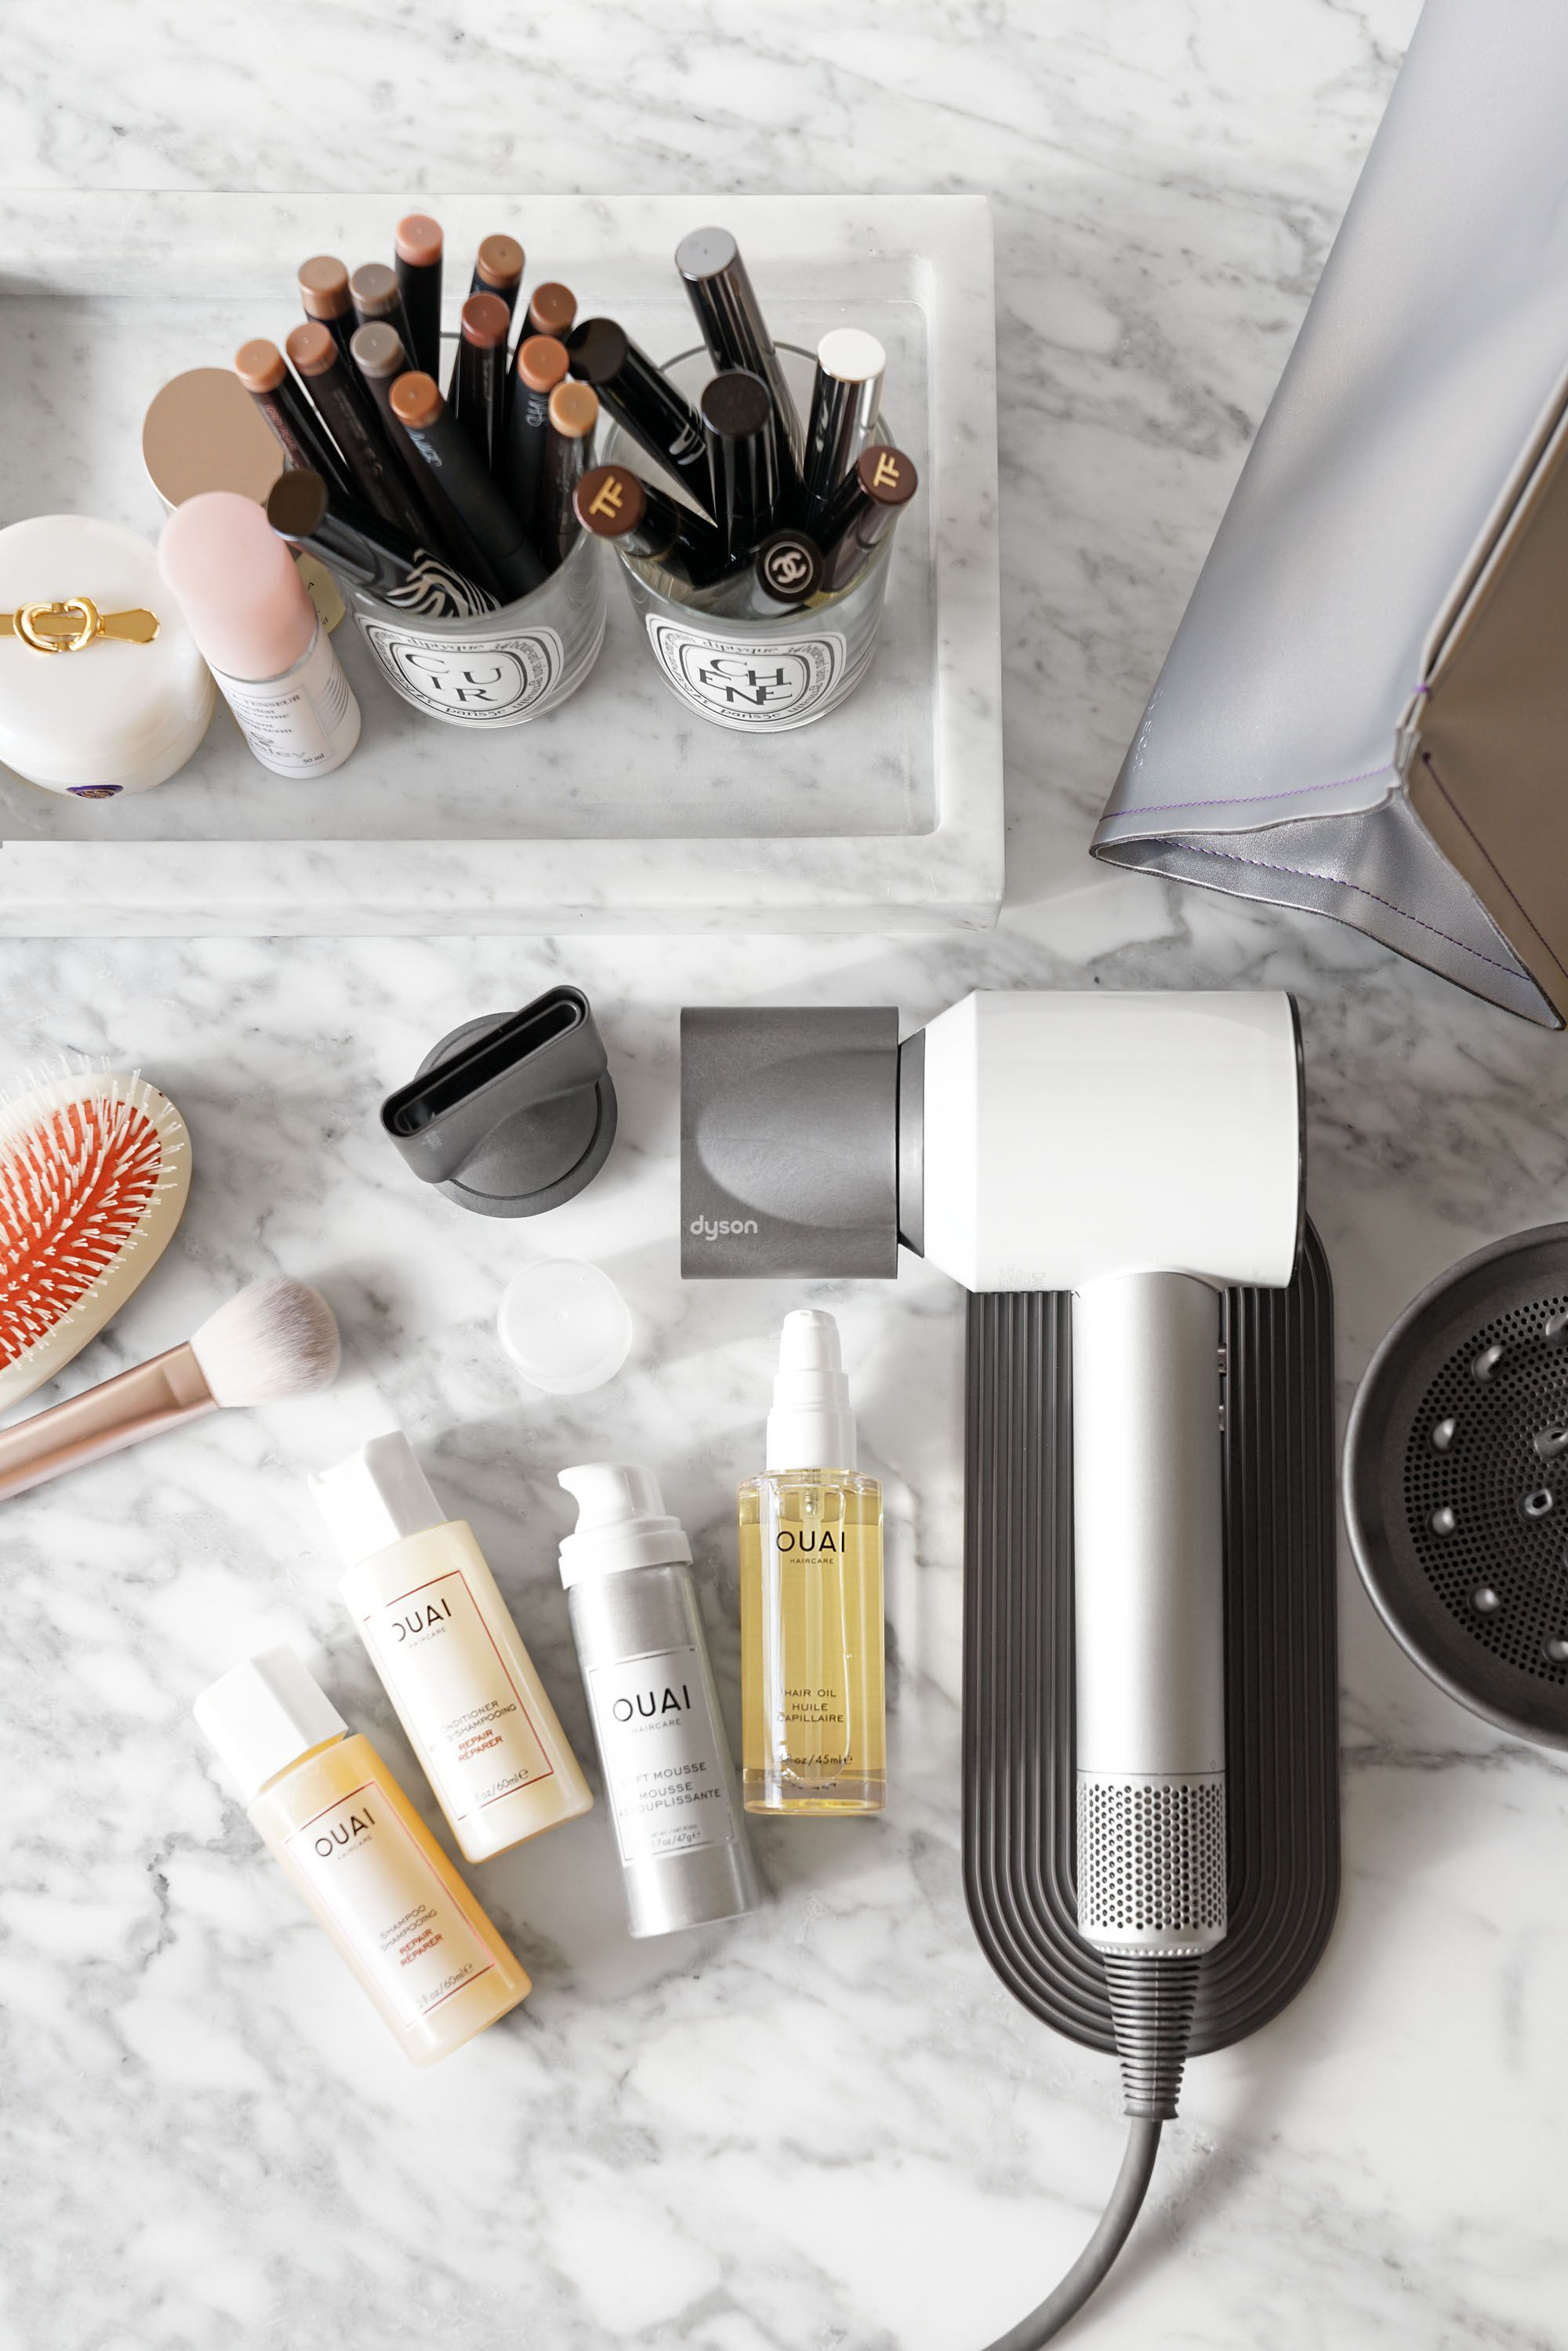 A Detailed Review Of The Dyson Supersonic Hair Dryer Blown A Ouai Set Available Exclusively At Sephora This Holiday Seaso Dyson Hair Dryer Best Hair Dryer Ouai